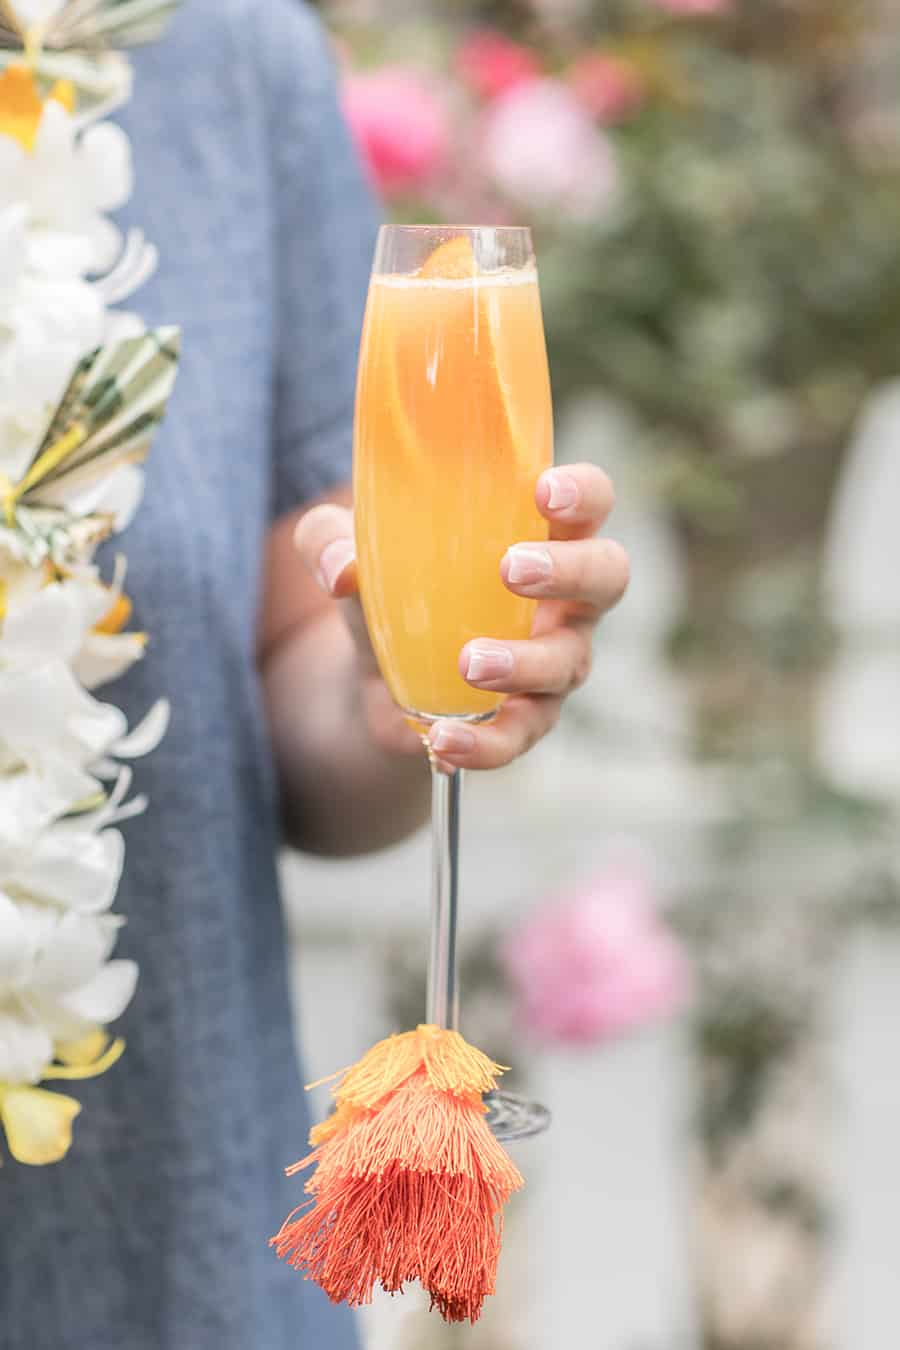 Holding a mimosa with a colorful tassel